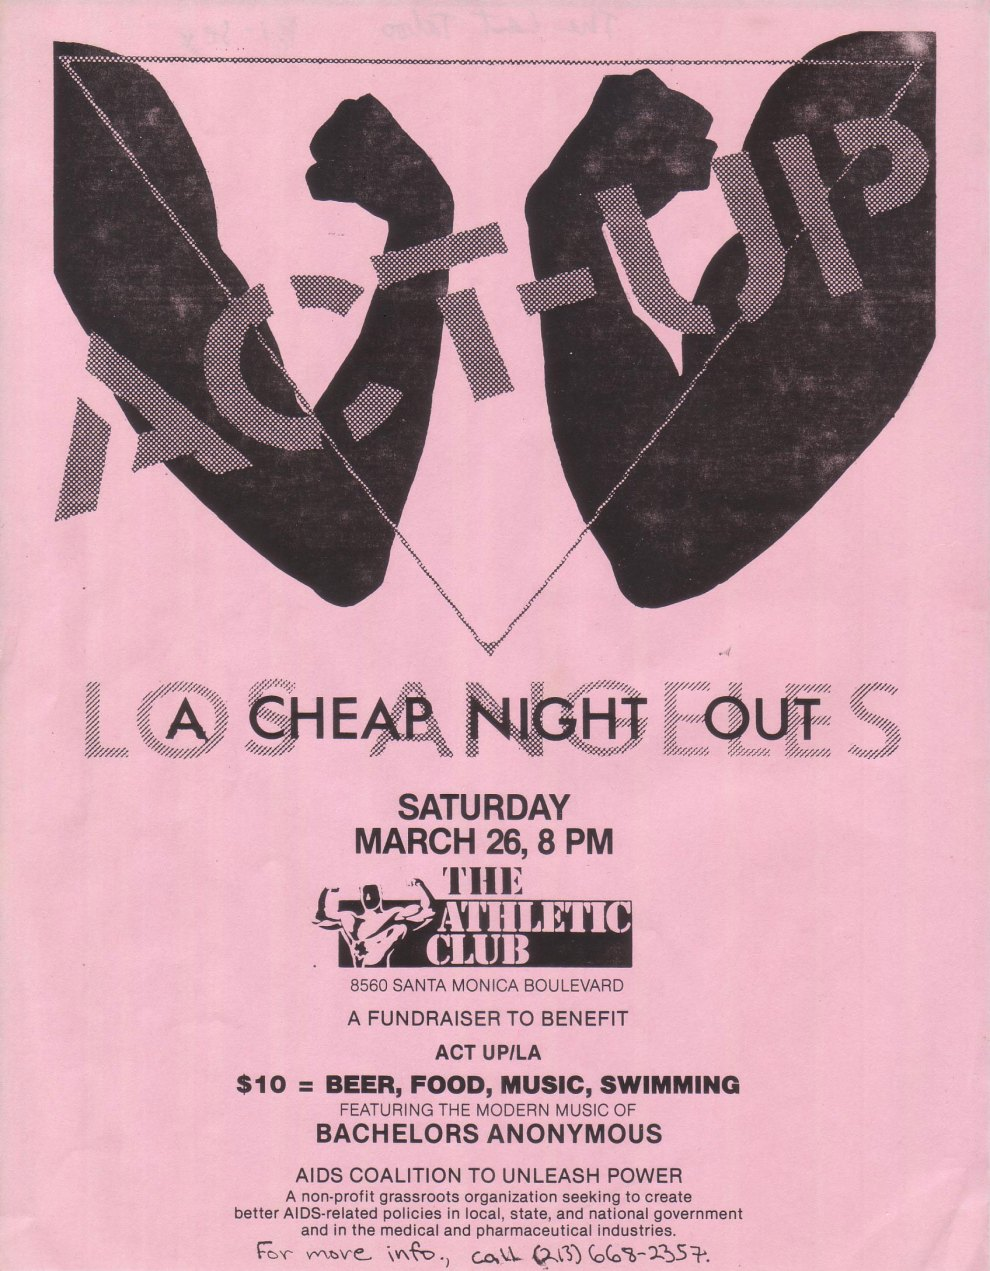 ACT UP/LA Benefit Flyer